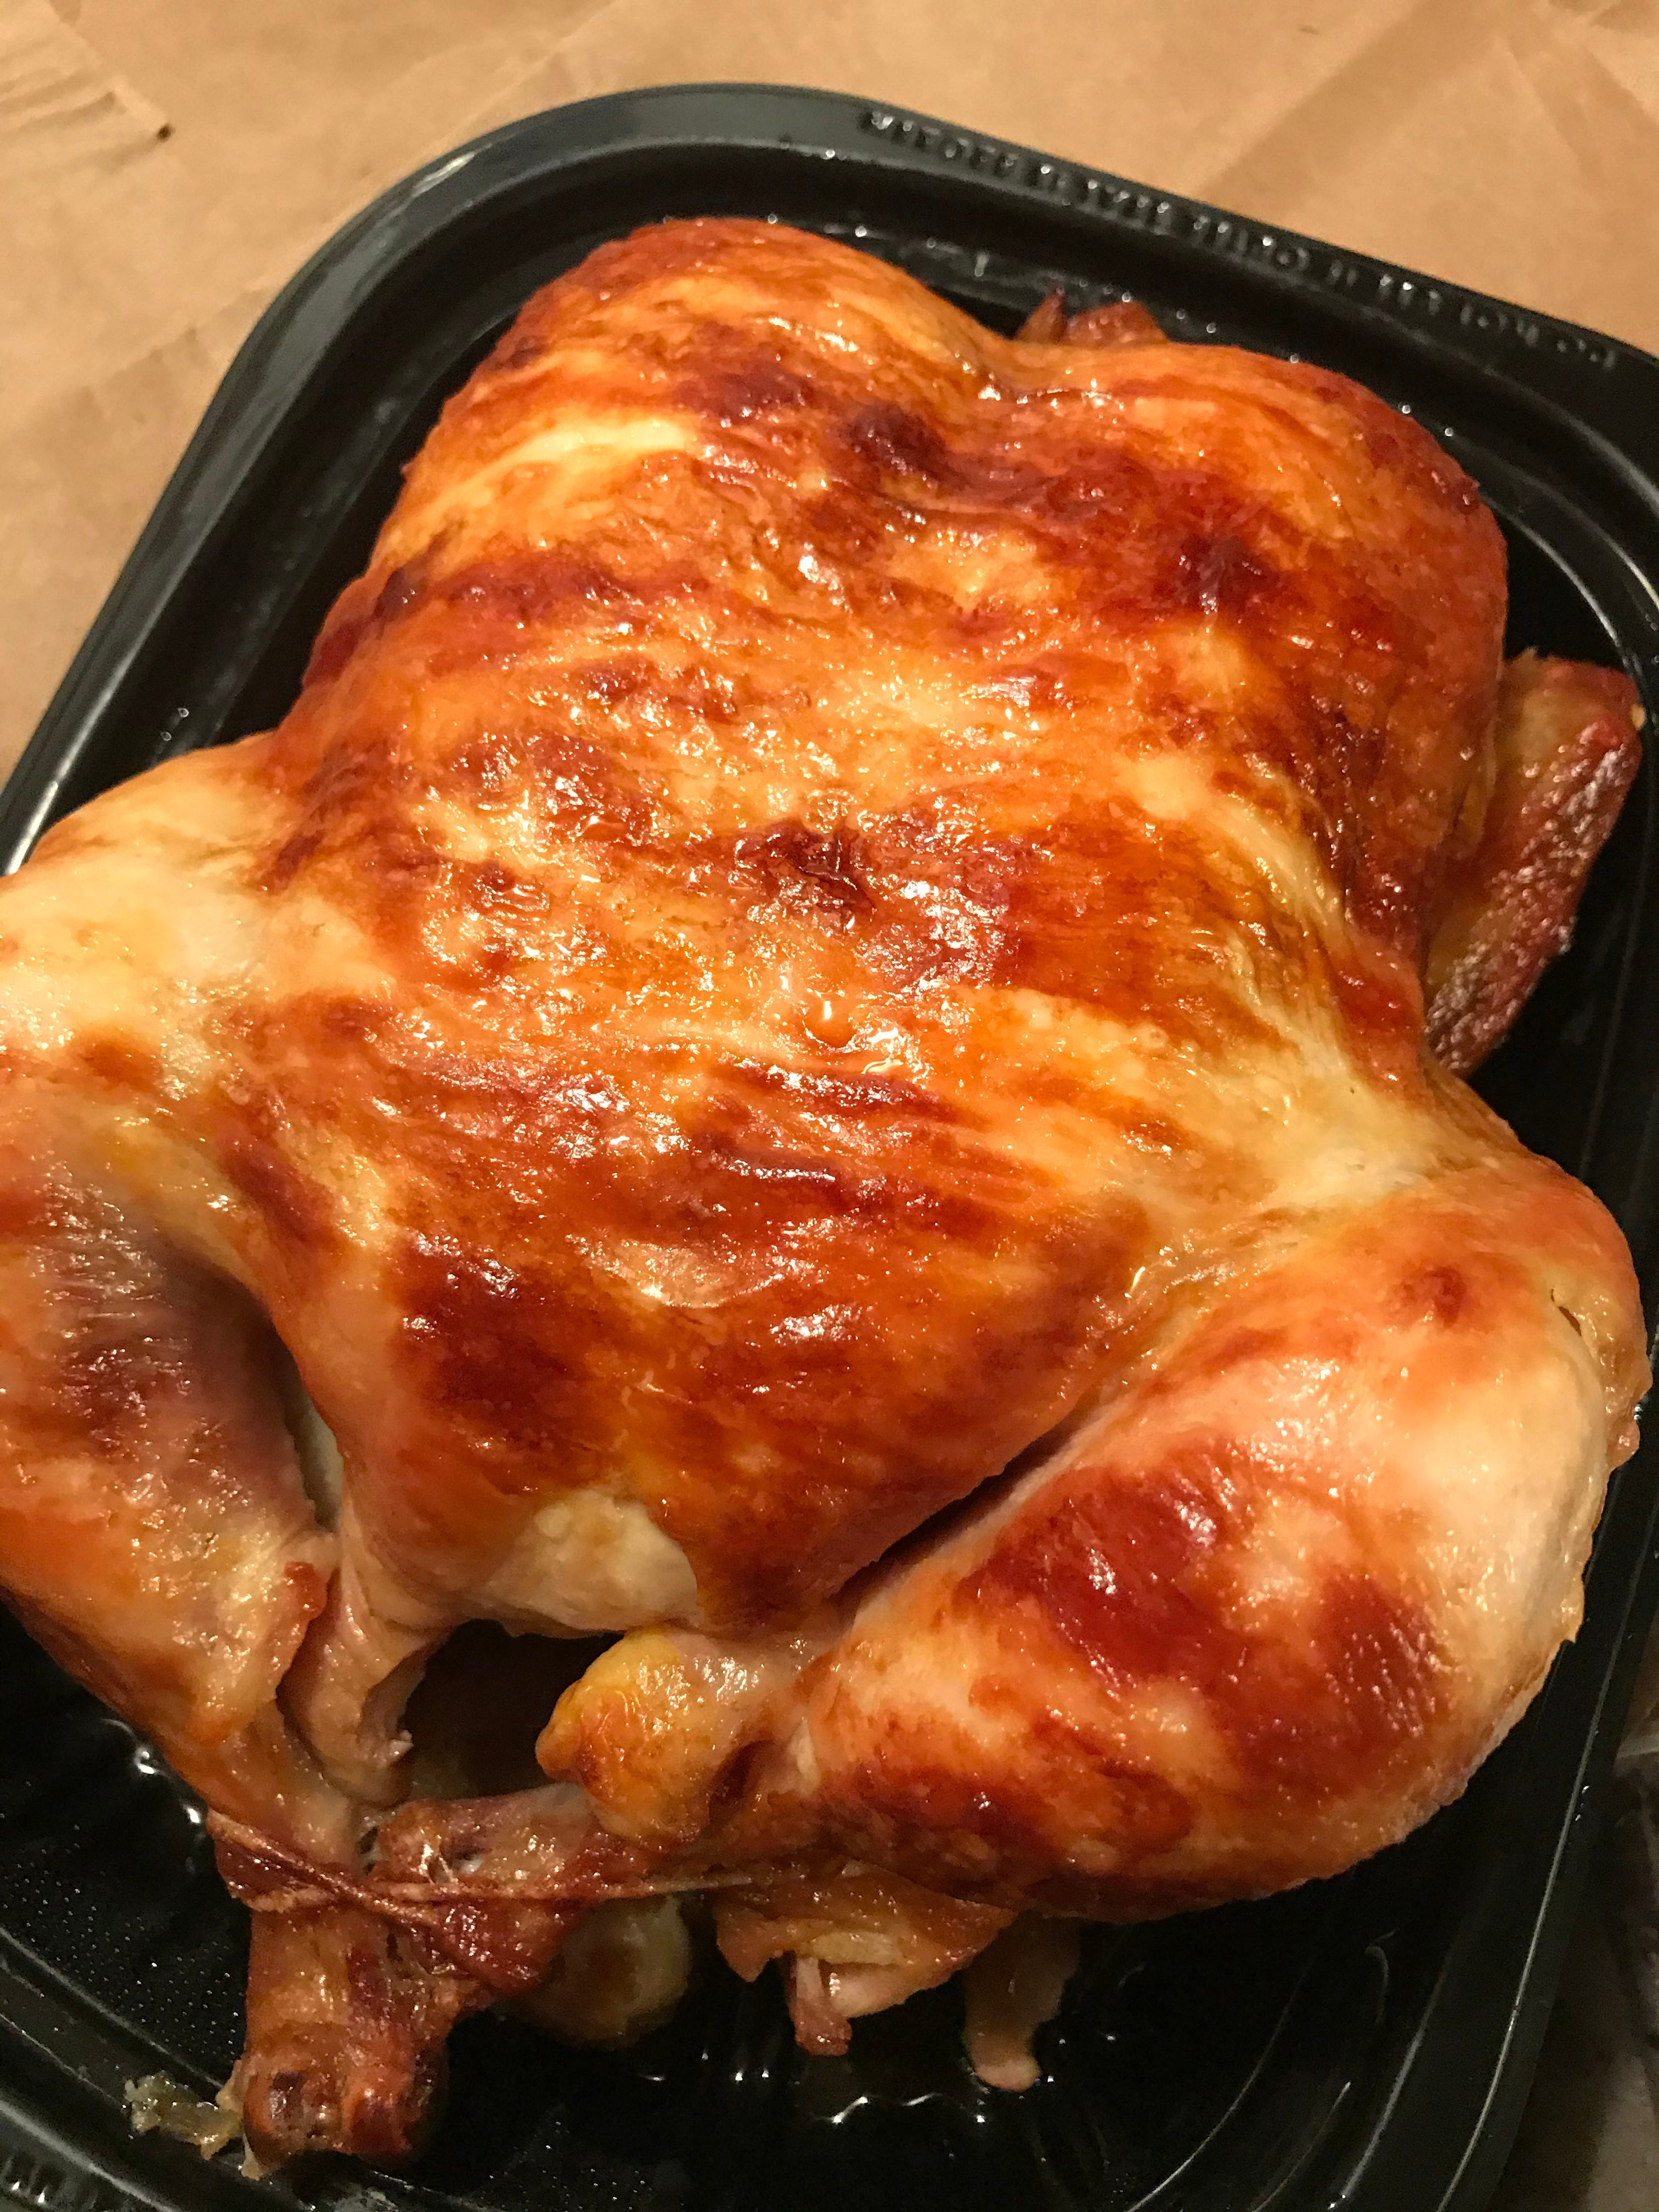 Rotisserie chicken guide, Milwaukee area: Stores offer convenience.